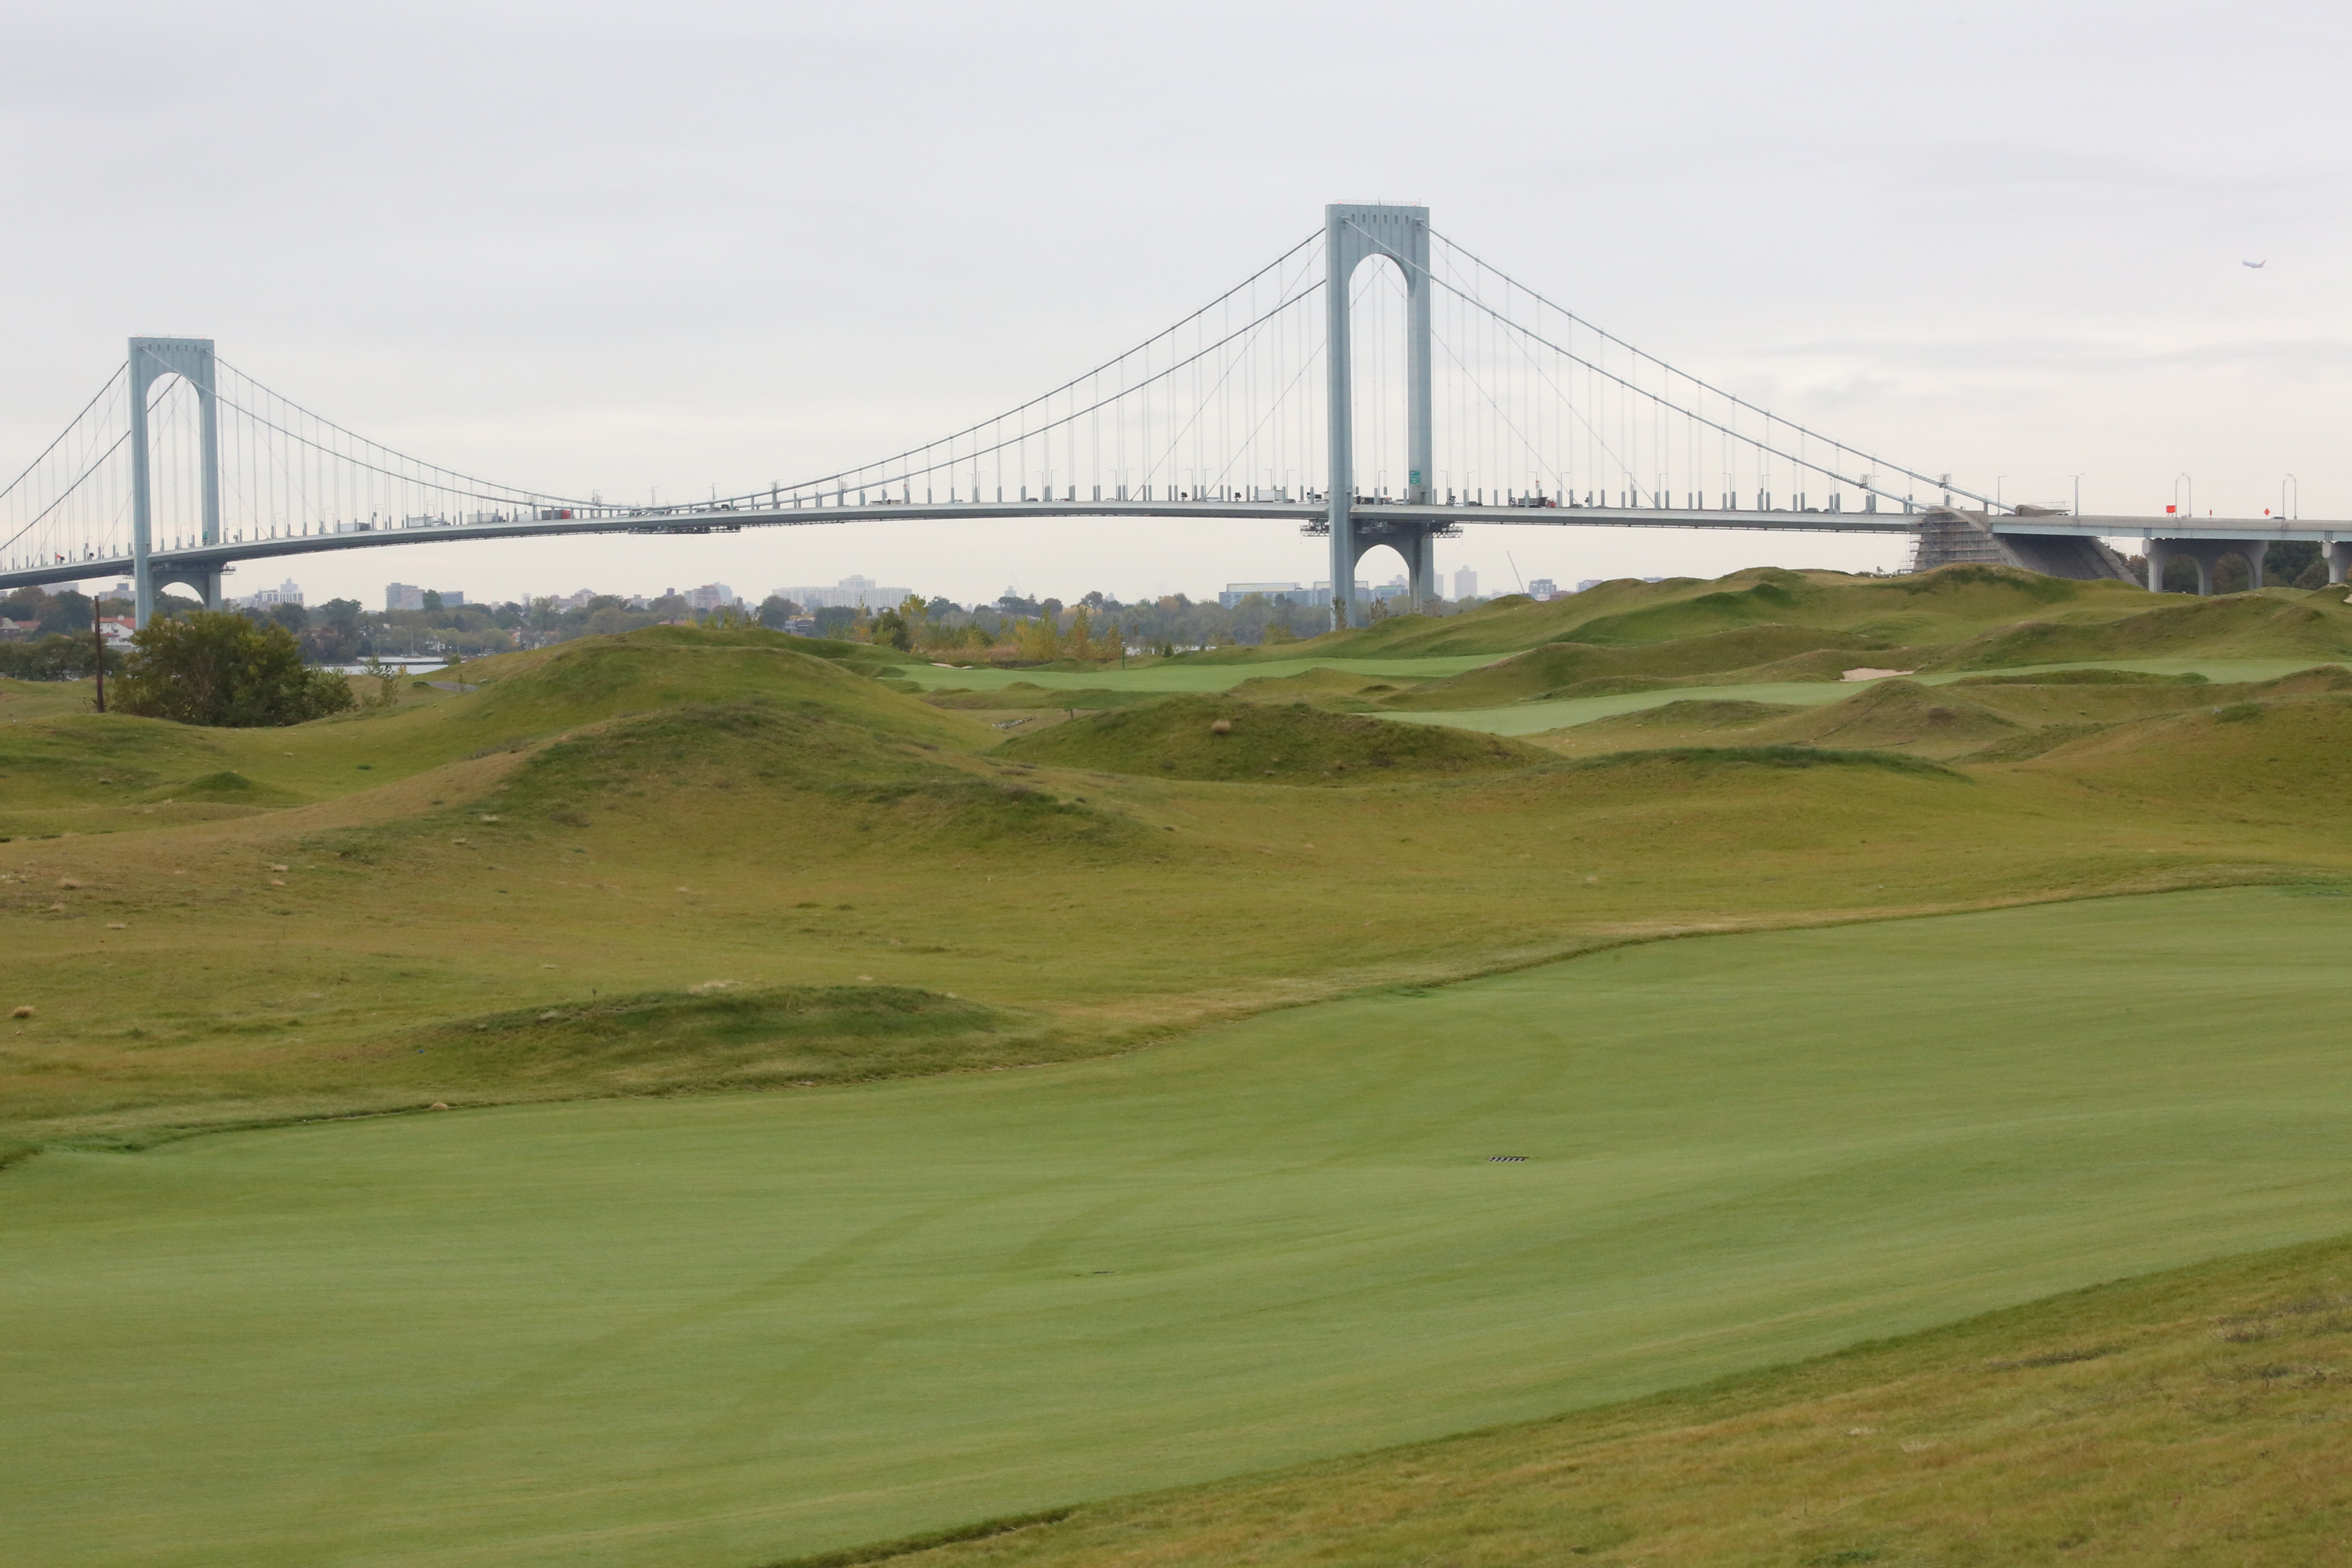 The Trump Golf Links at Ferry Point opened in 2013.